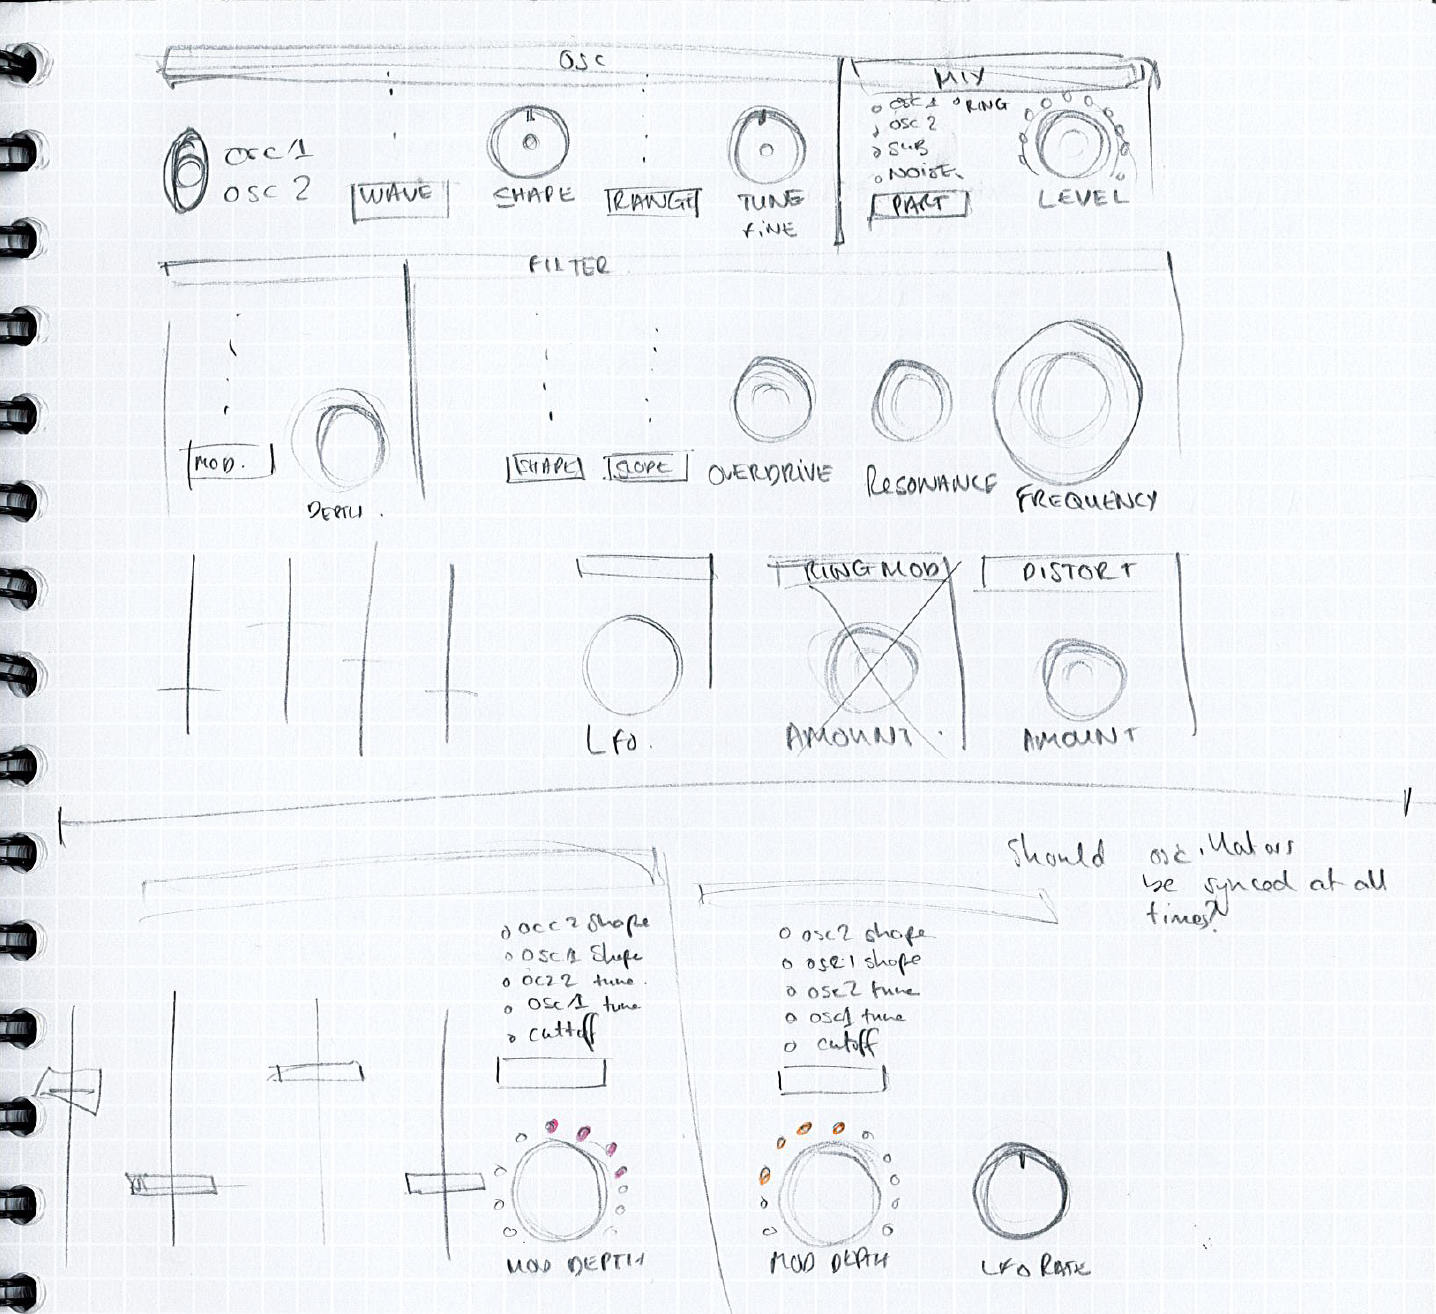 Circuit Mono Station Behind The Scenes Novation Notes Medium Usable If A Friend Wants Music Amplifier I Thinks This Sketches Of Top Panel From Alex Lucas Notebook